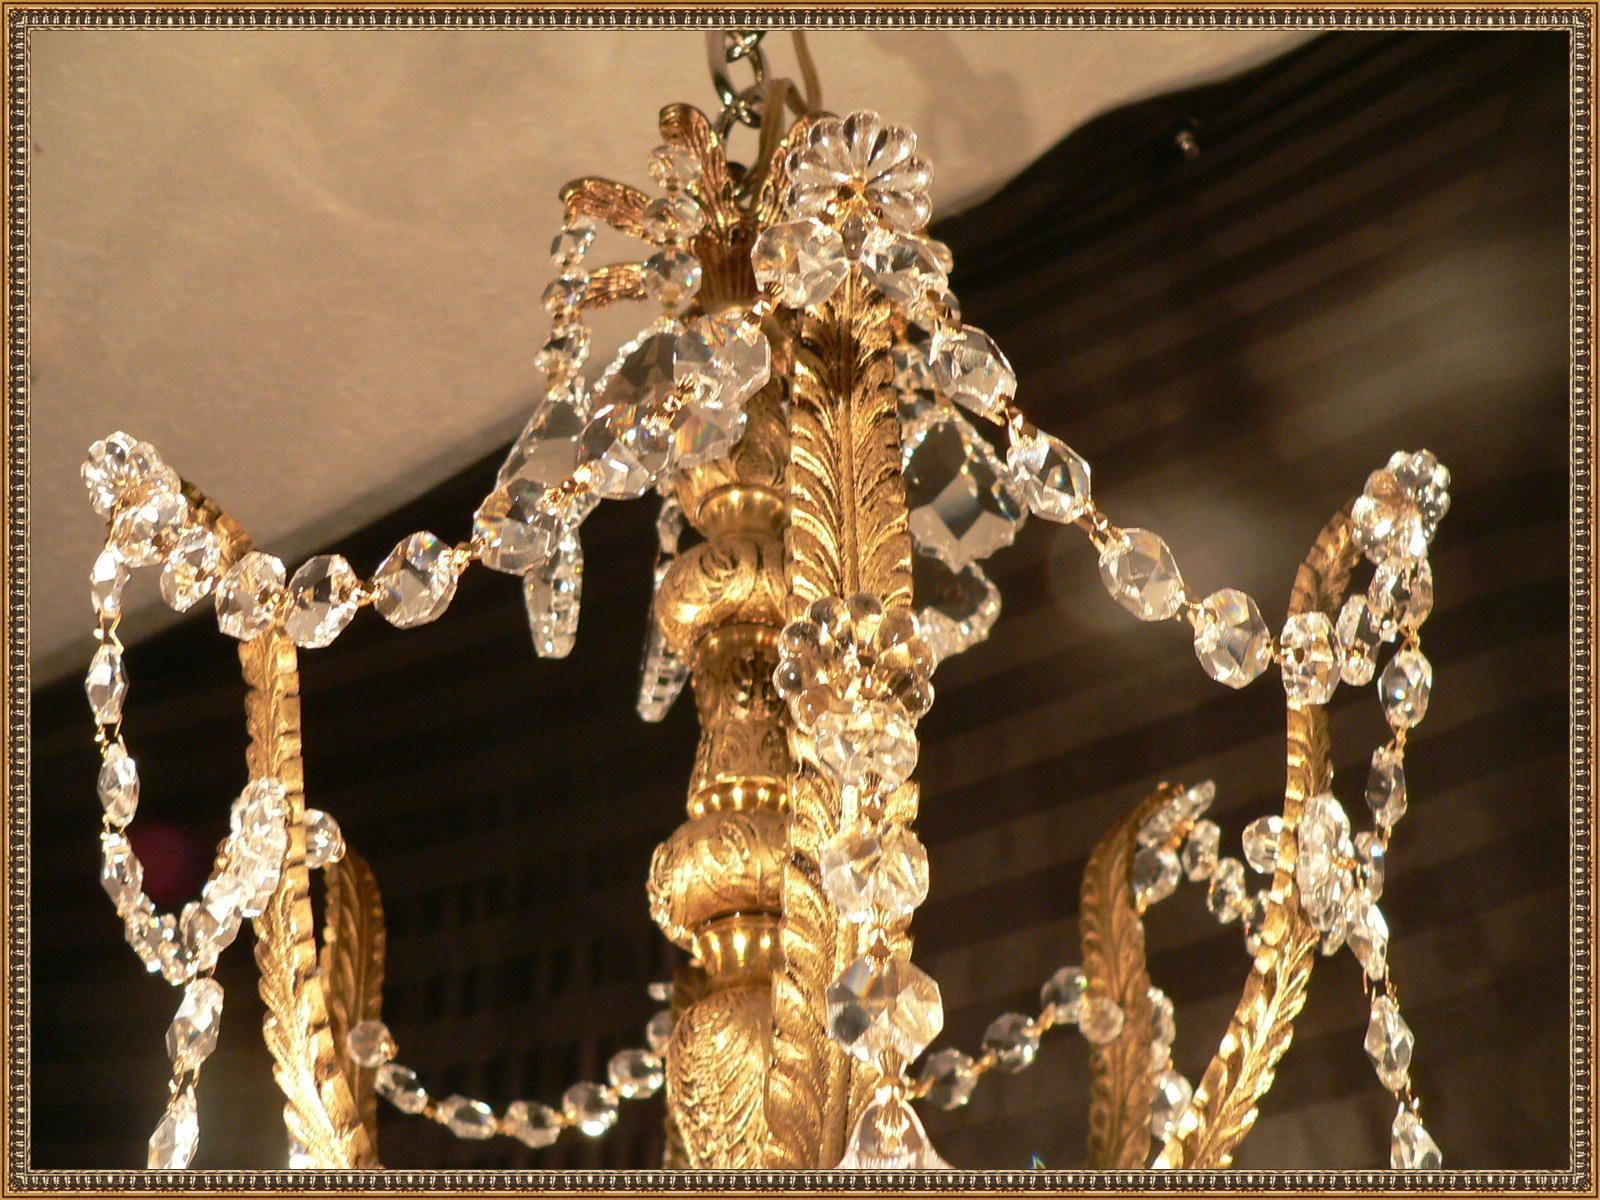 Amazing ornate vintage european solid brass chandelier crystals amazing ornate vintage european solid brass chandelier crystals 26x26 ebay arubaitofo Choice Image